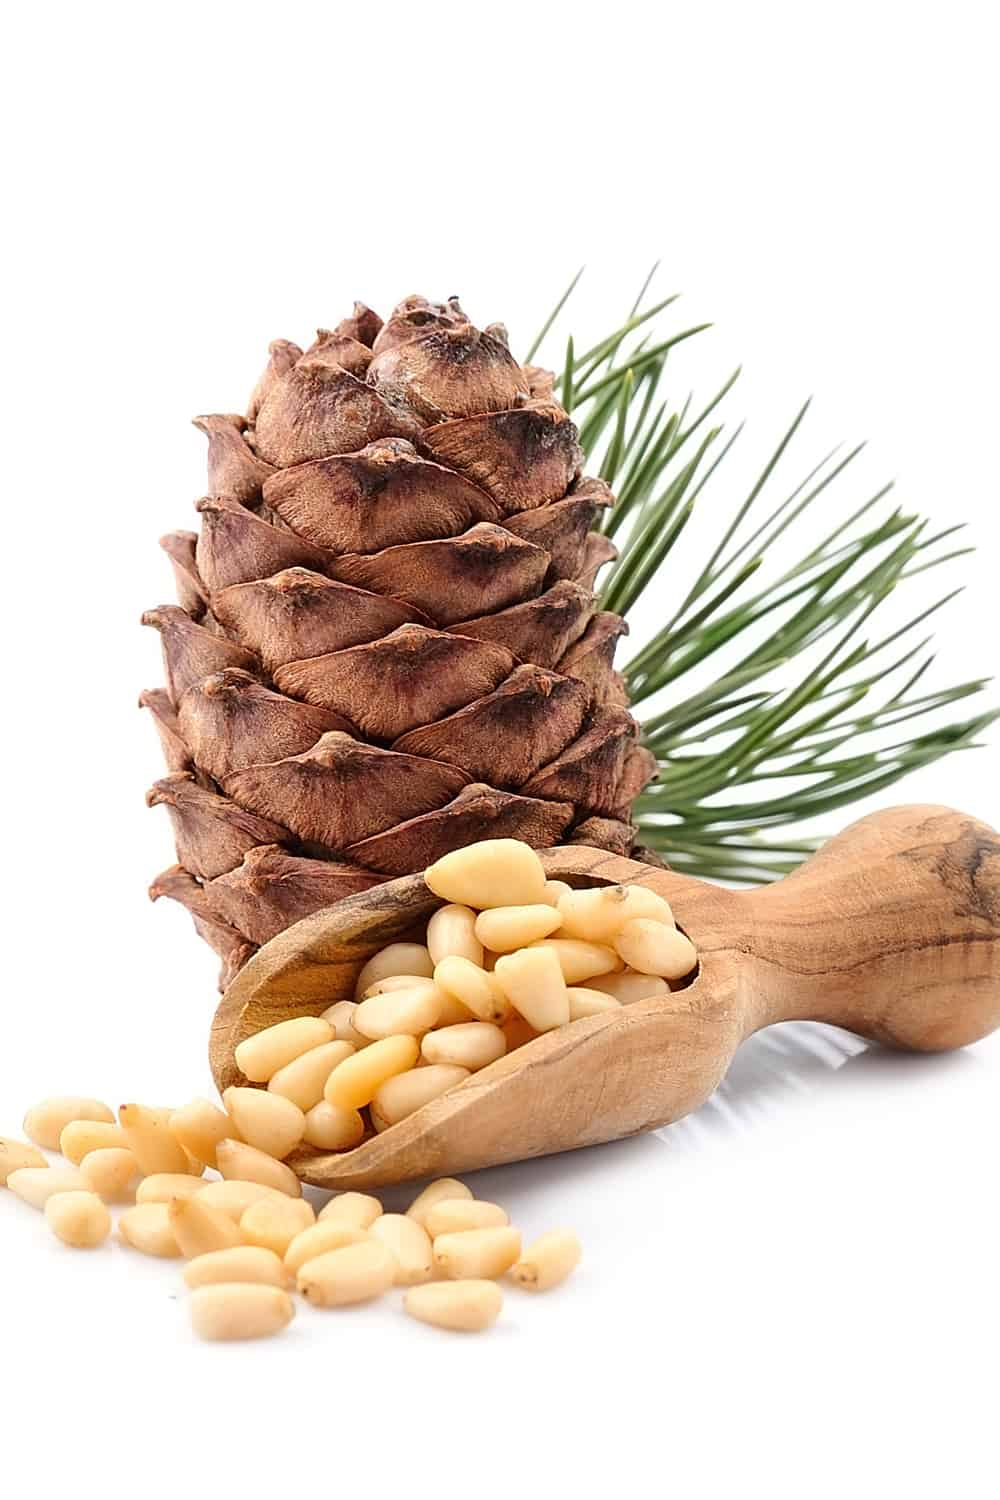 How Long Do Pine Nuts Last